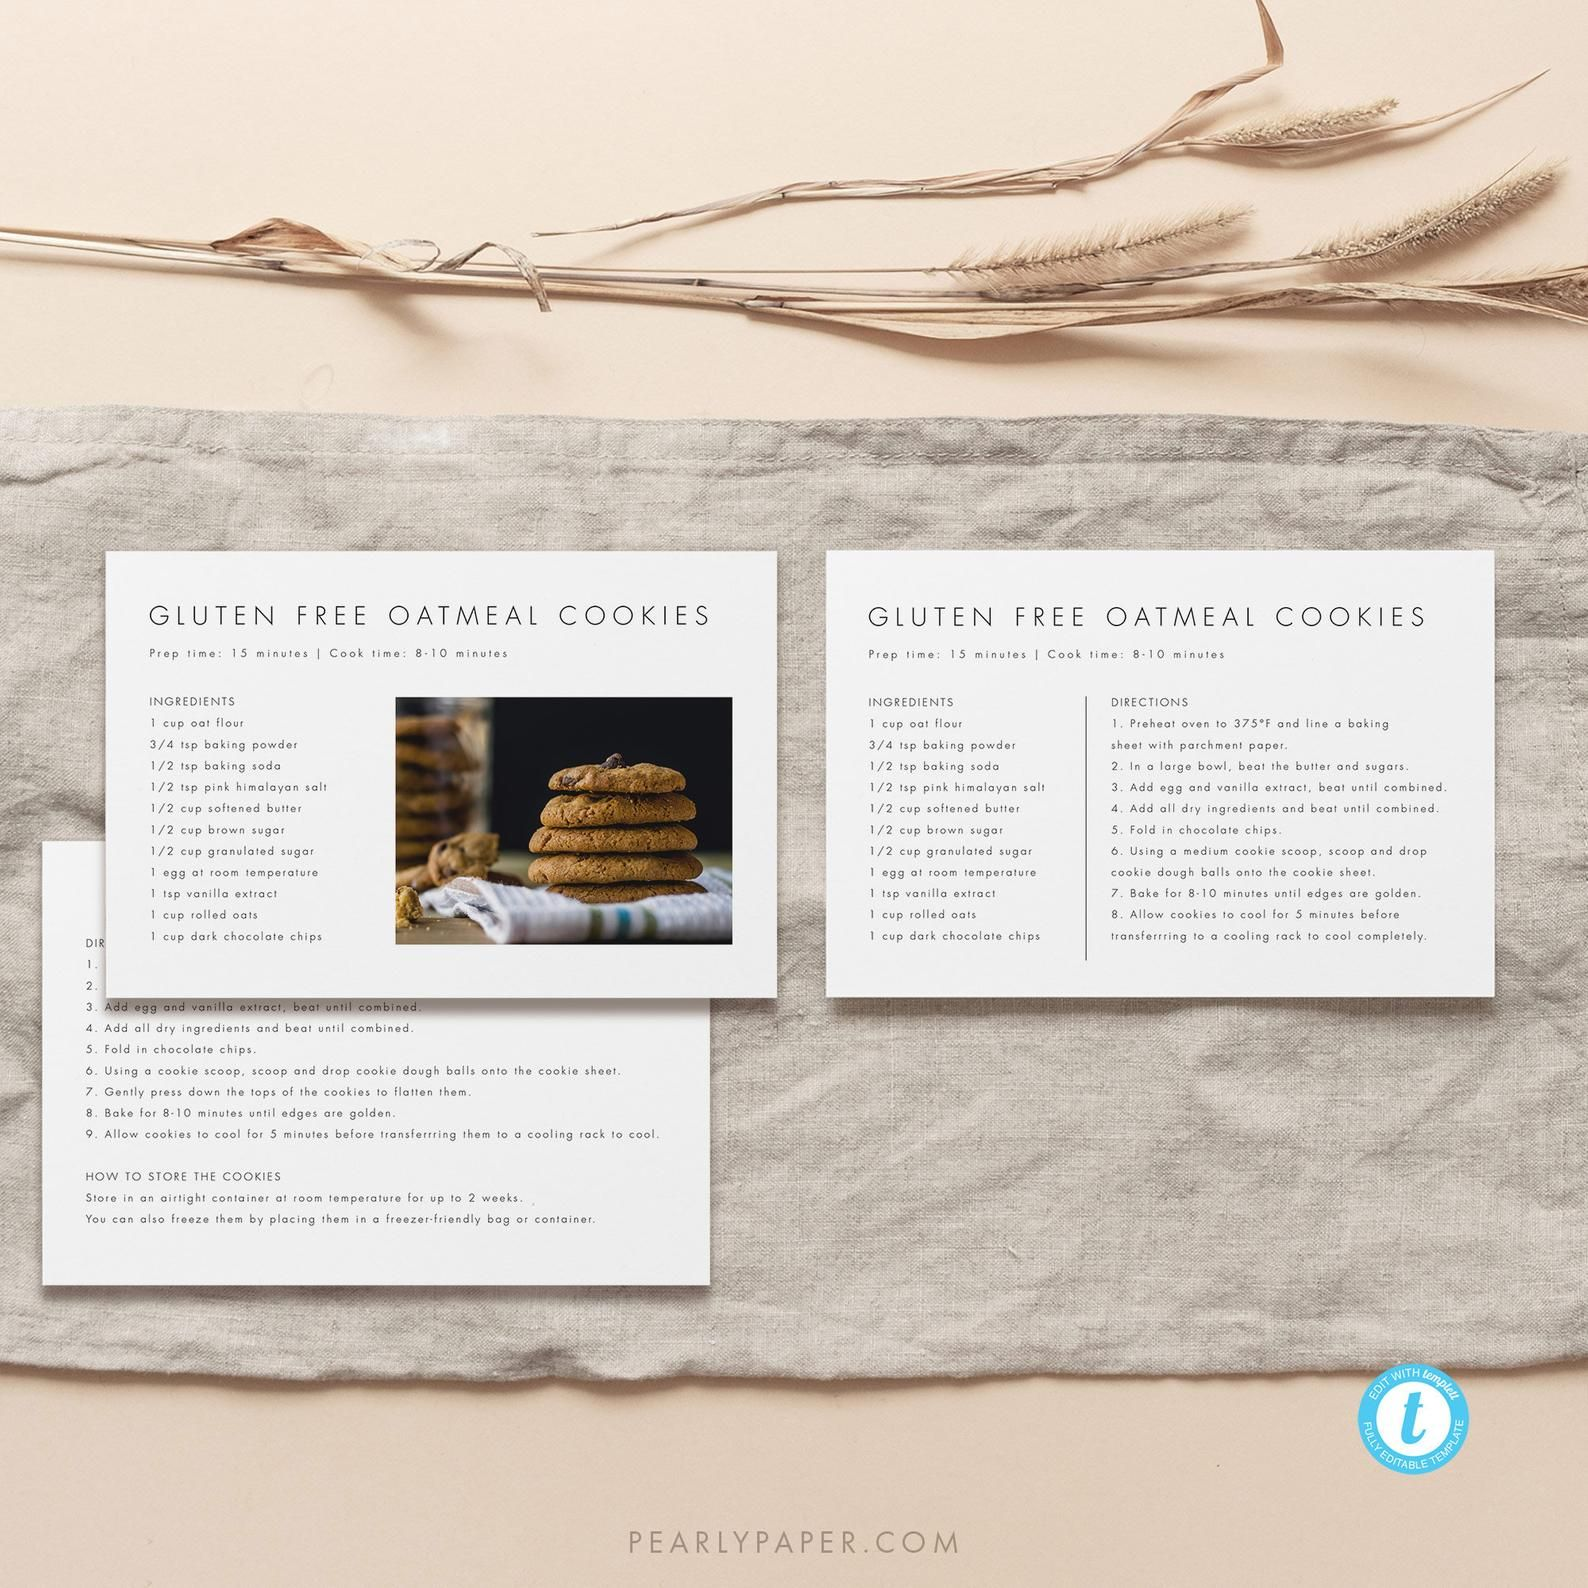 Editable Recipe Card Personalized Recipe Template Download Minimalist Recipe Card With Photo Printable Recipe Template Templett 21 In 2021 Recipe Cards Template Printable Recipe Cards Recipe Cards